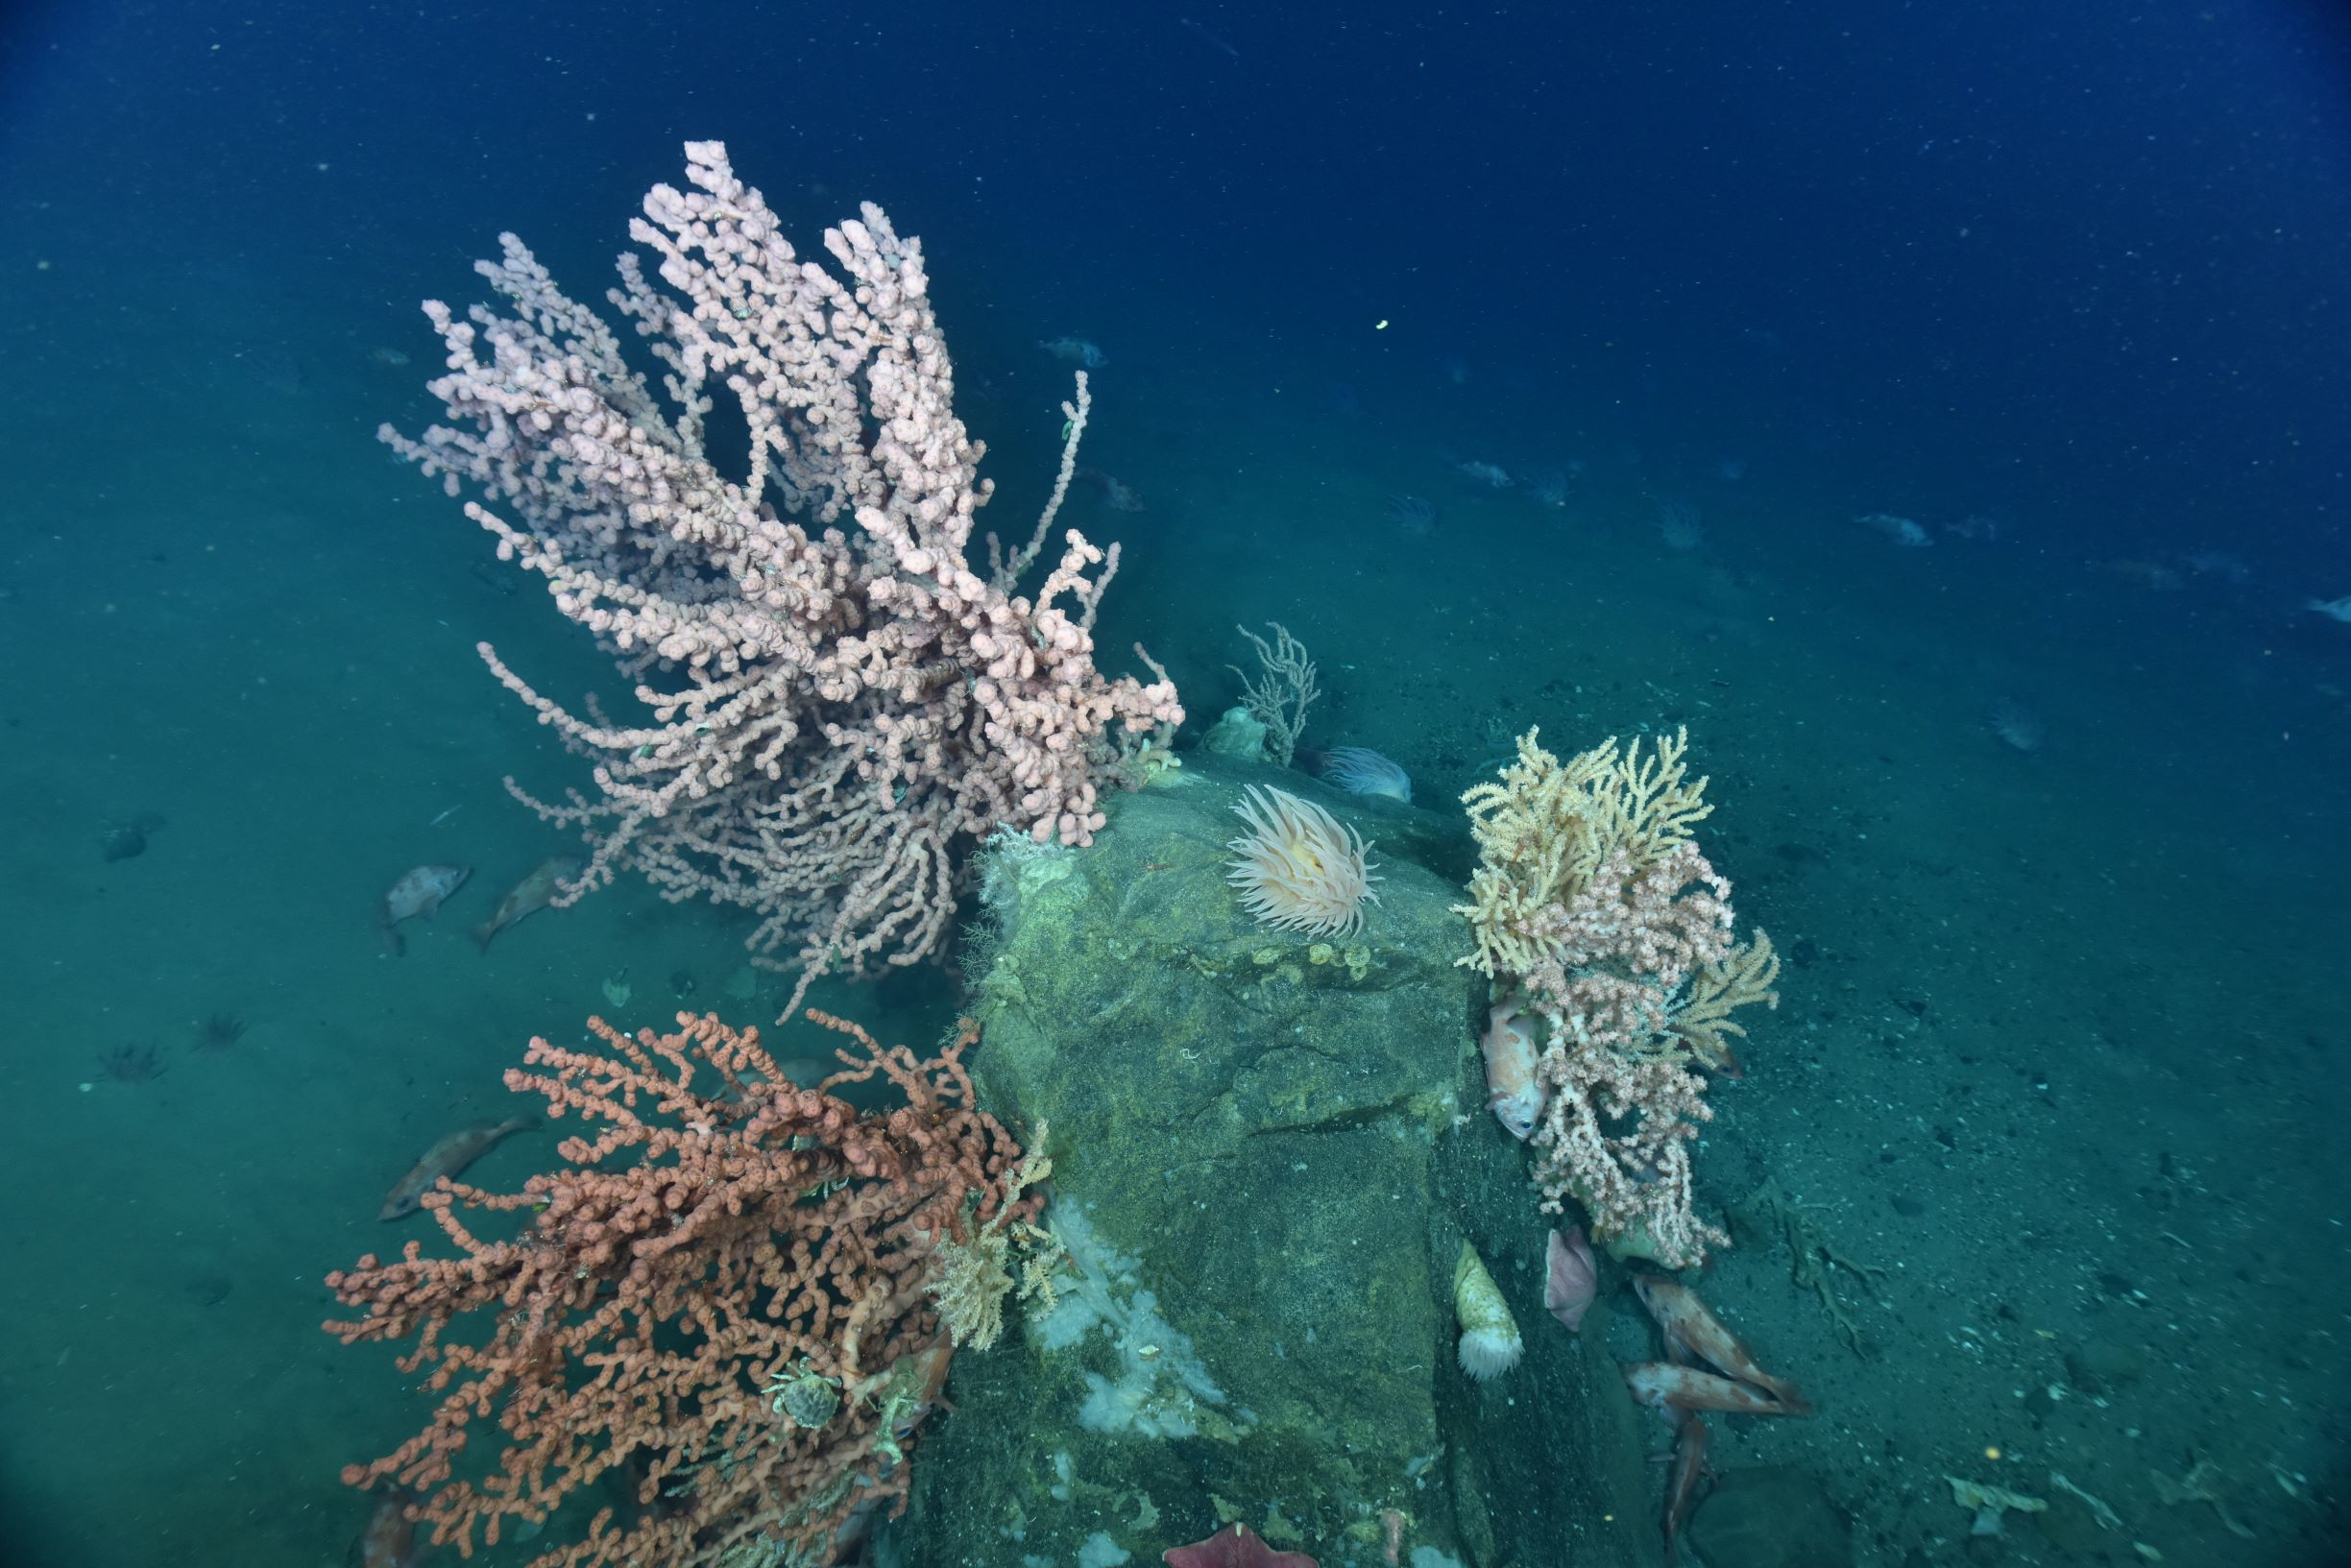 Bubblegum corals, Paragorgia arborea, attract a variety of species in the Fundian Channel.